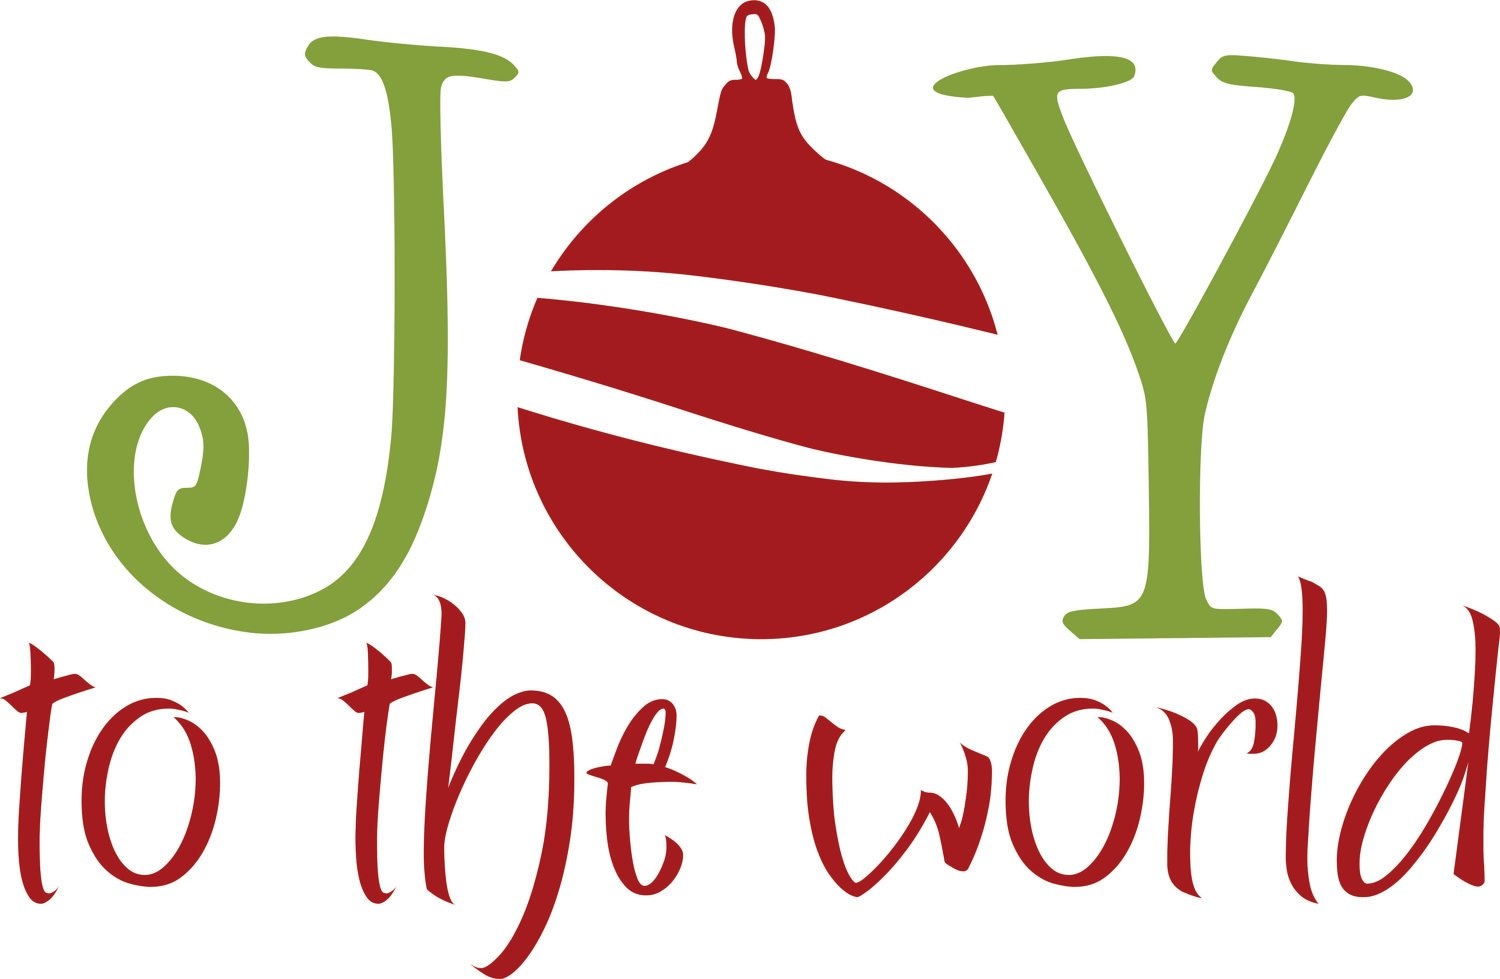 Joy to the world the lord is come clipart 4 » Clipart Portal.